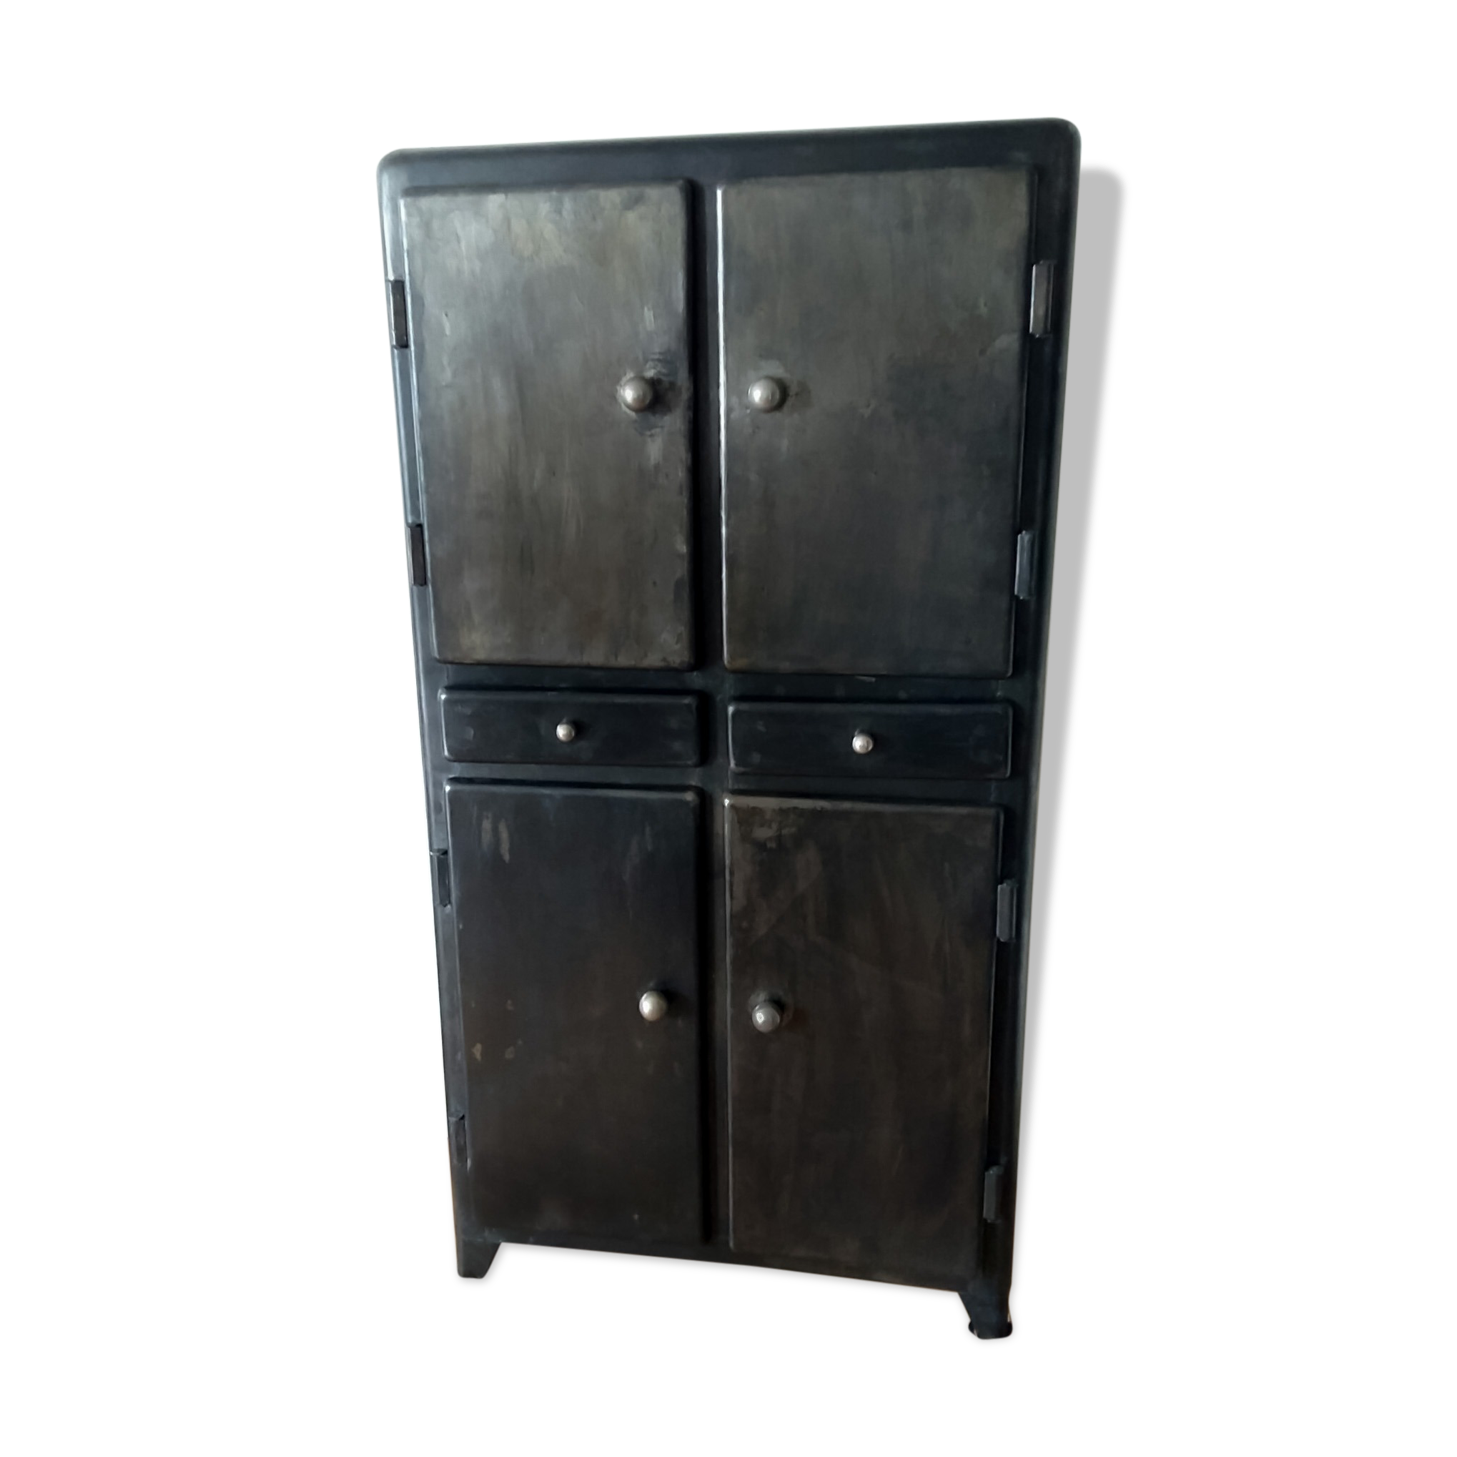 meuble cuisine en metal cheap meuble haut cuisine with meuble cuisine en metal meubles sur. Black Bedroom Furniture Sets. Home Design Ideas